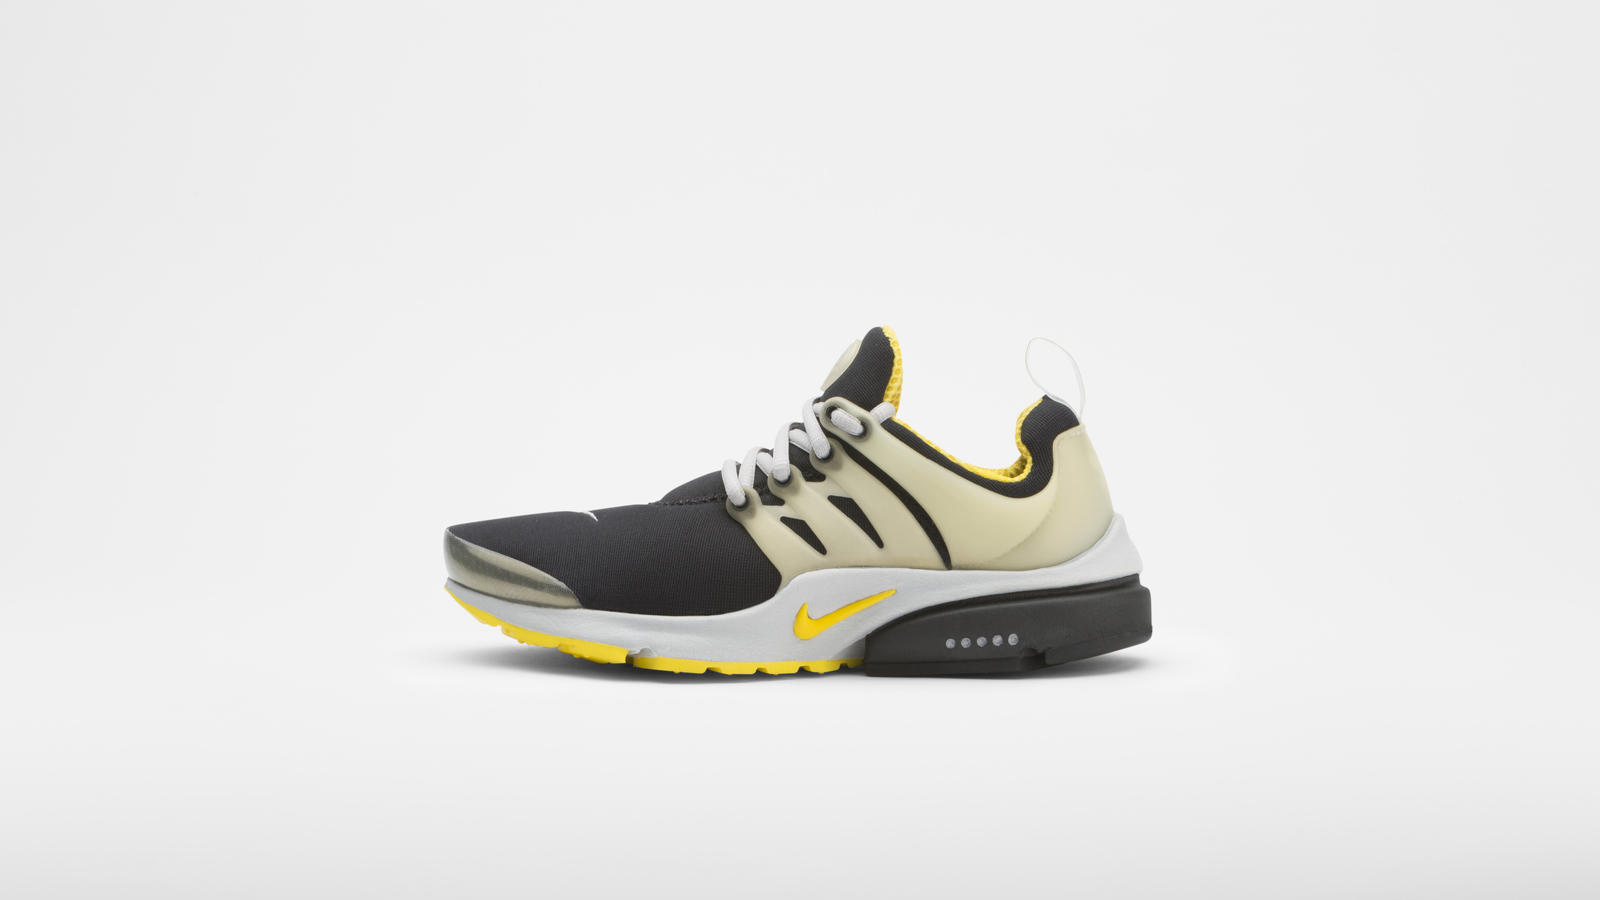 5d9dffbebd0a The Magic Behind the Nike Air Presto - Nike News